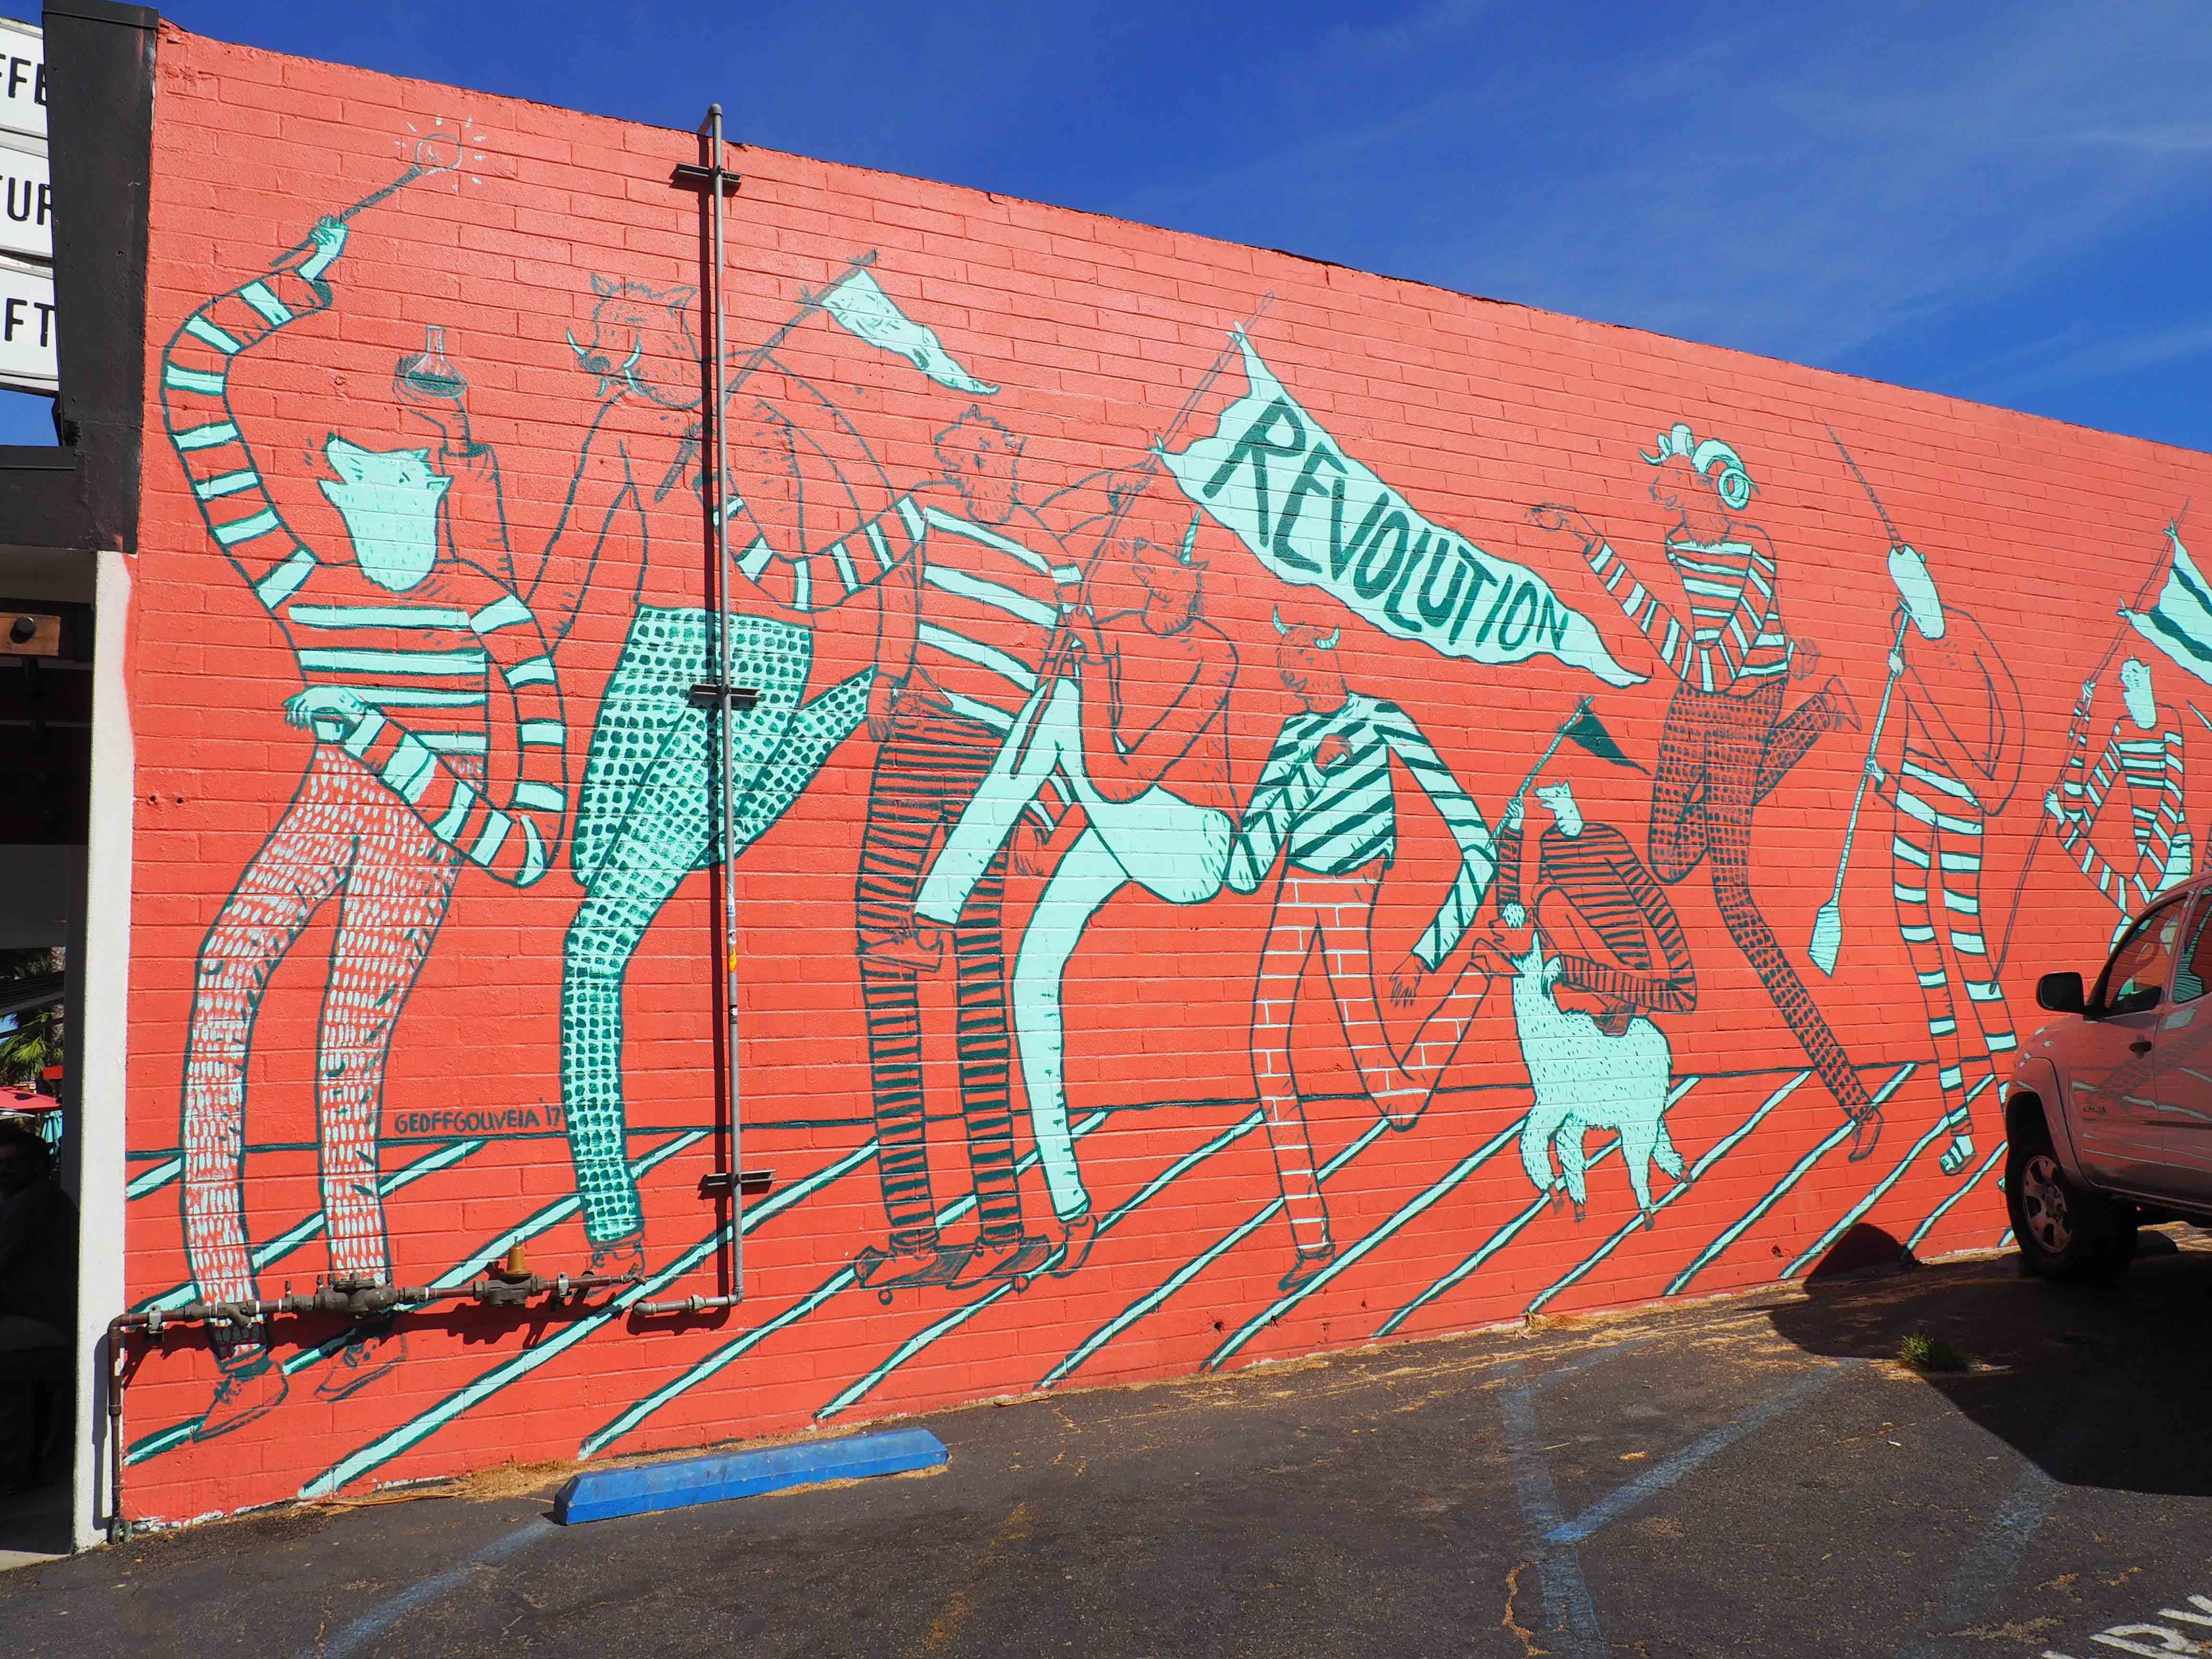 Revolution Roasters Mural by Artist Geoff Gouveia